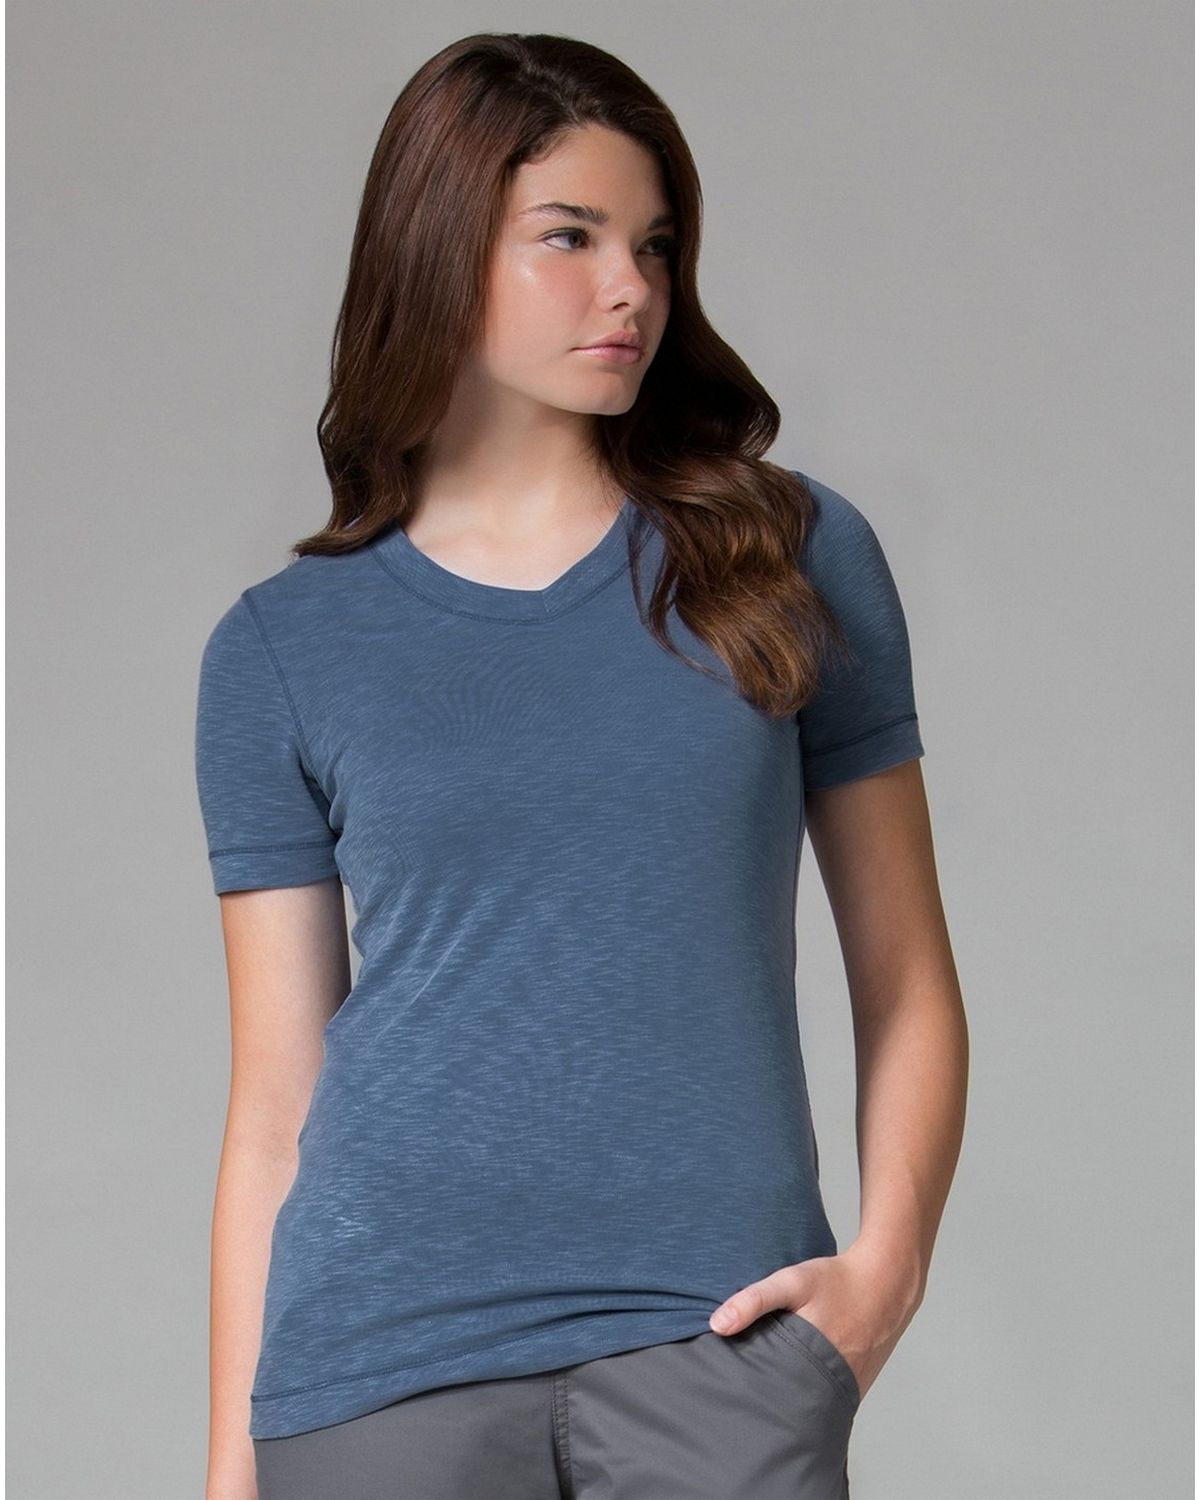 Maevn Modal 6109 Womens Short Sleeve Tee - Navy - XL 6109